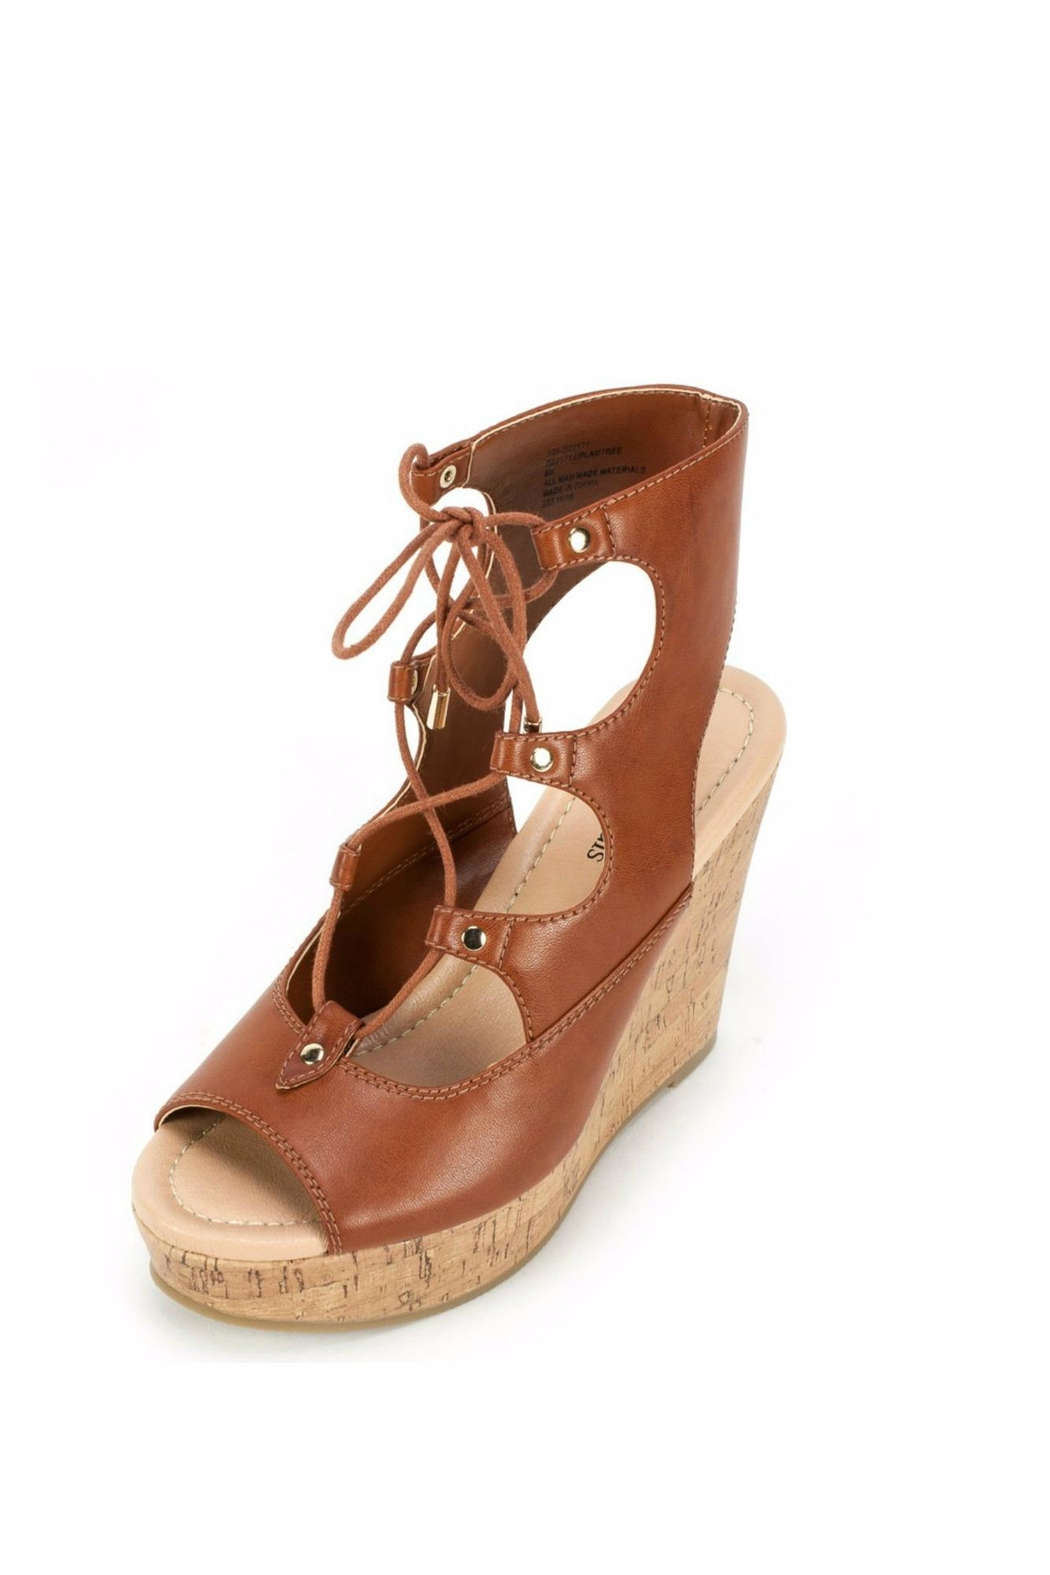 2799e1e661d08 7 Dials Lace Up Heeled Sandal from Nashville by JeweLL Fashion ...